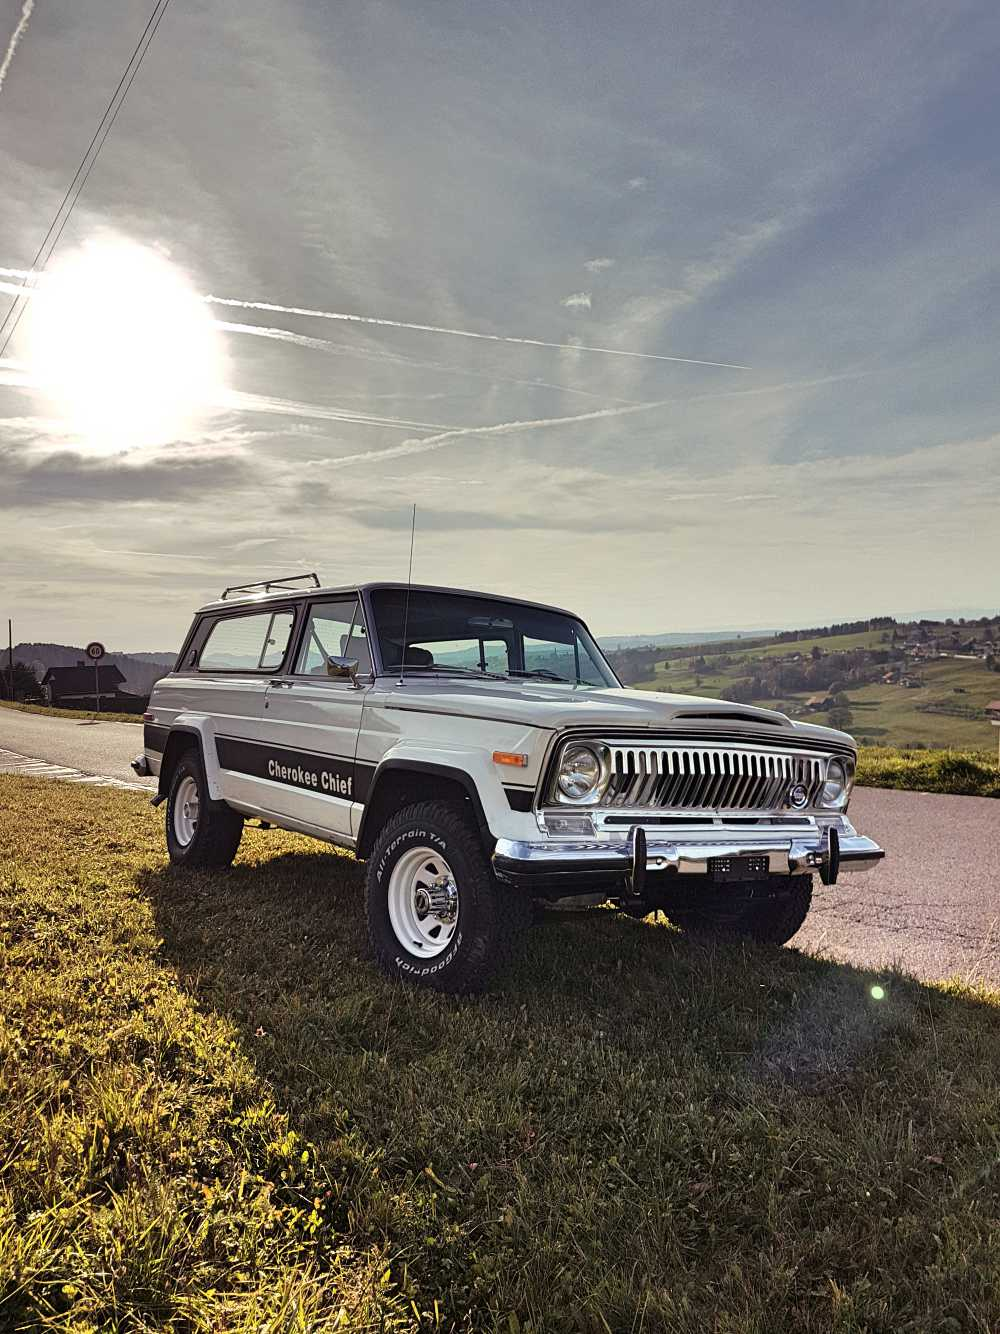 jeep-cherokee-chief-1978-shooting-moleson-66